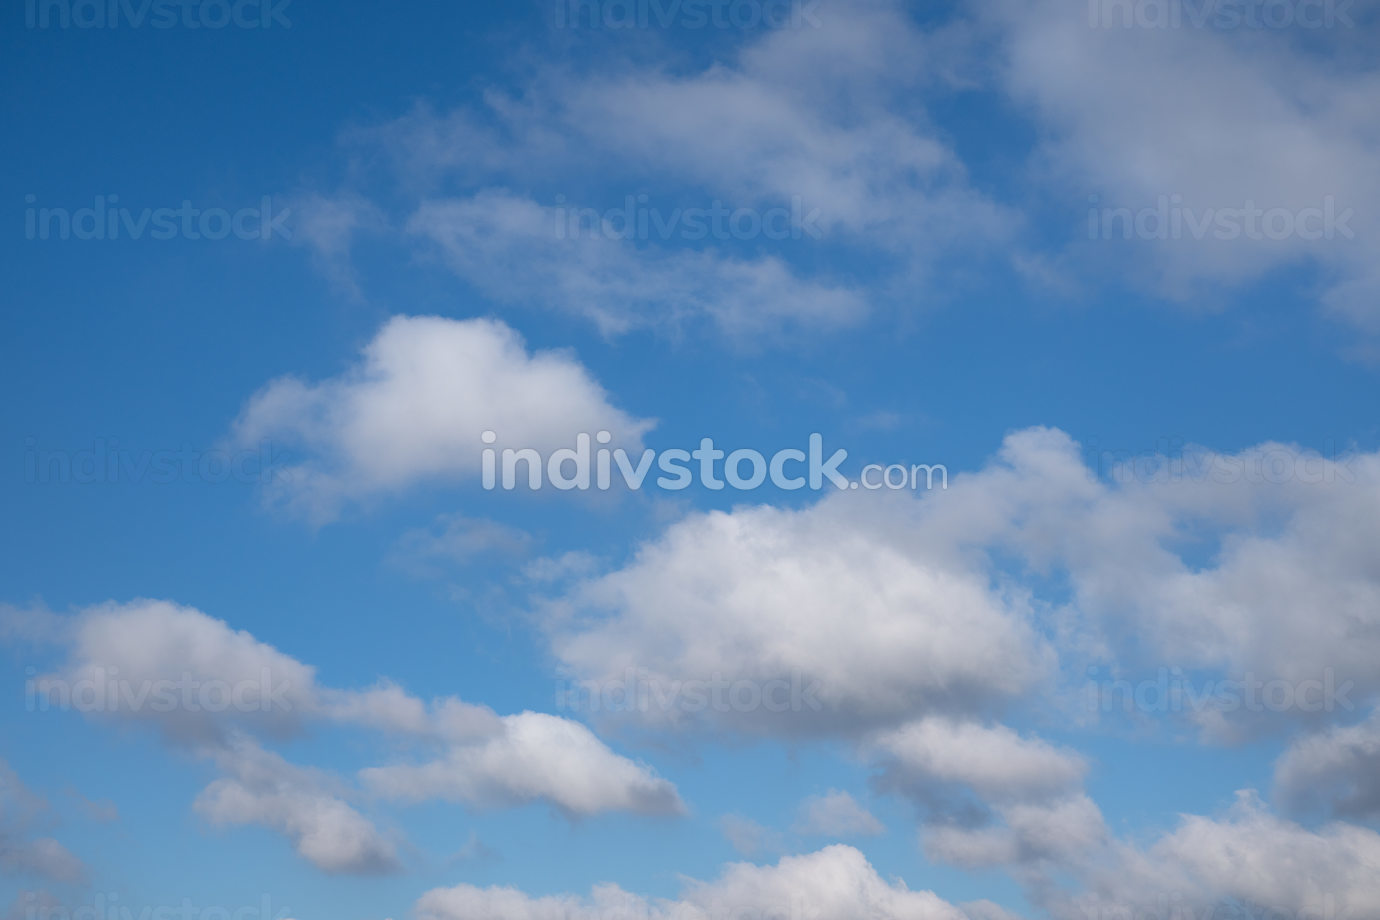 Low angle view to sky with fleecy clouds